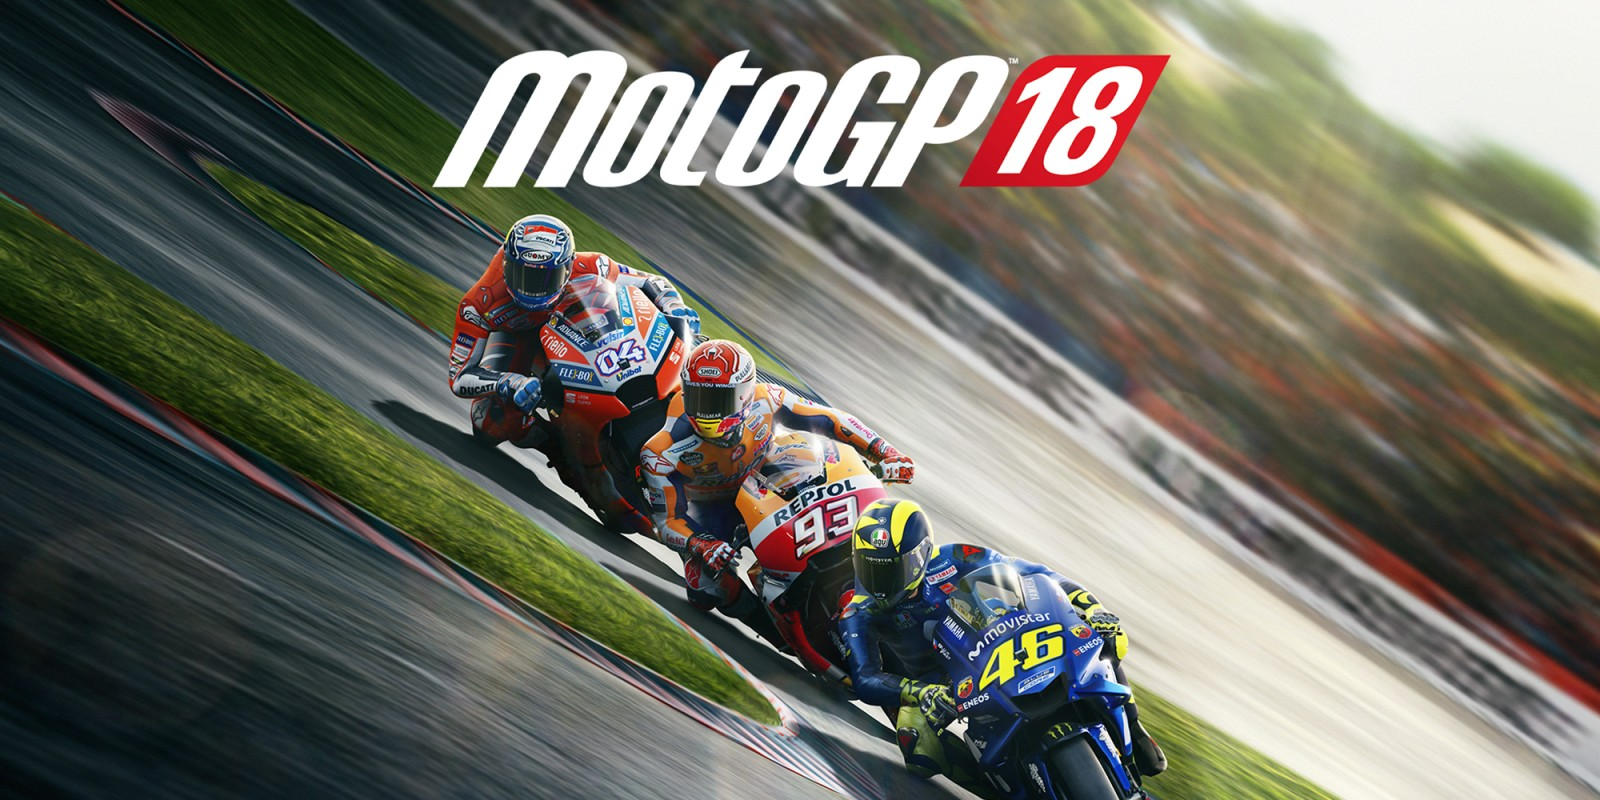 Red Bull Events >> MotoGP™18 | Nintendo Switch | Games | Nintendo